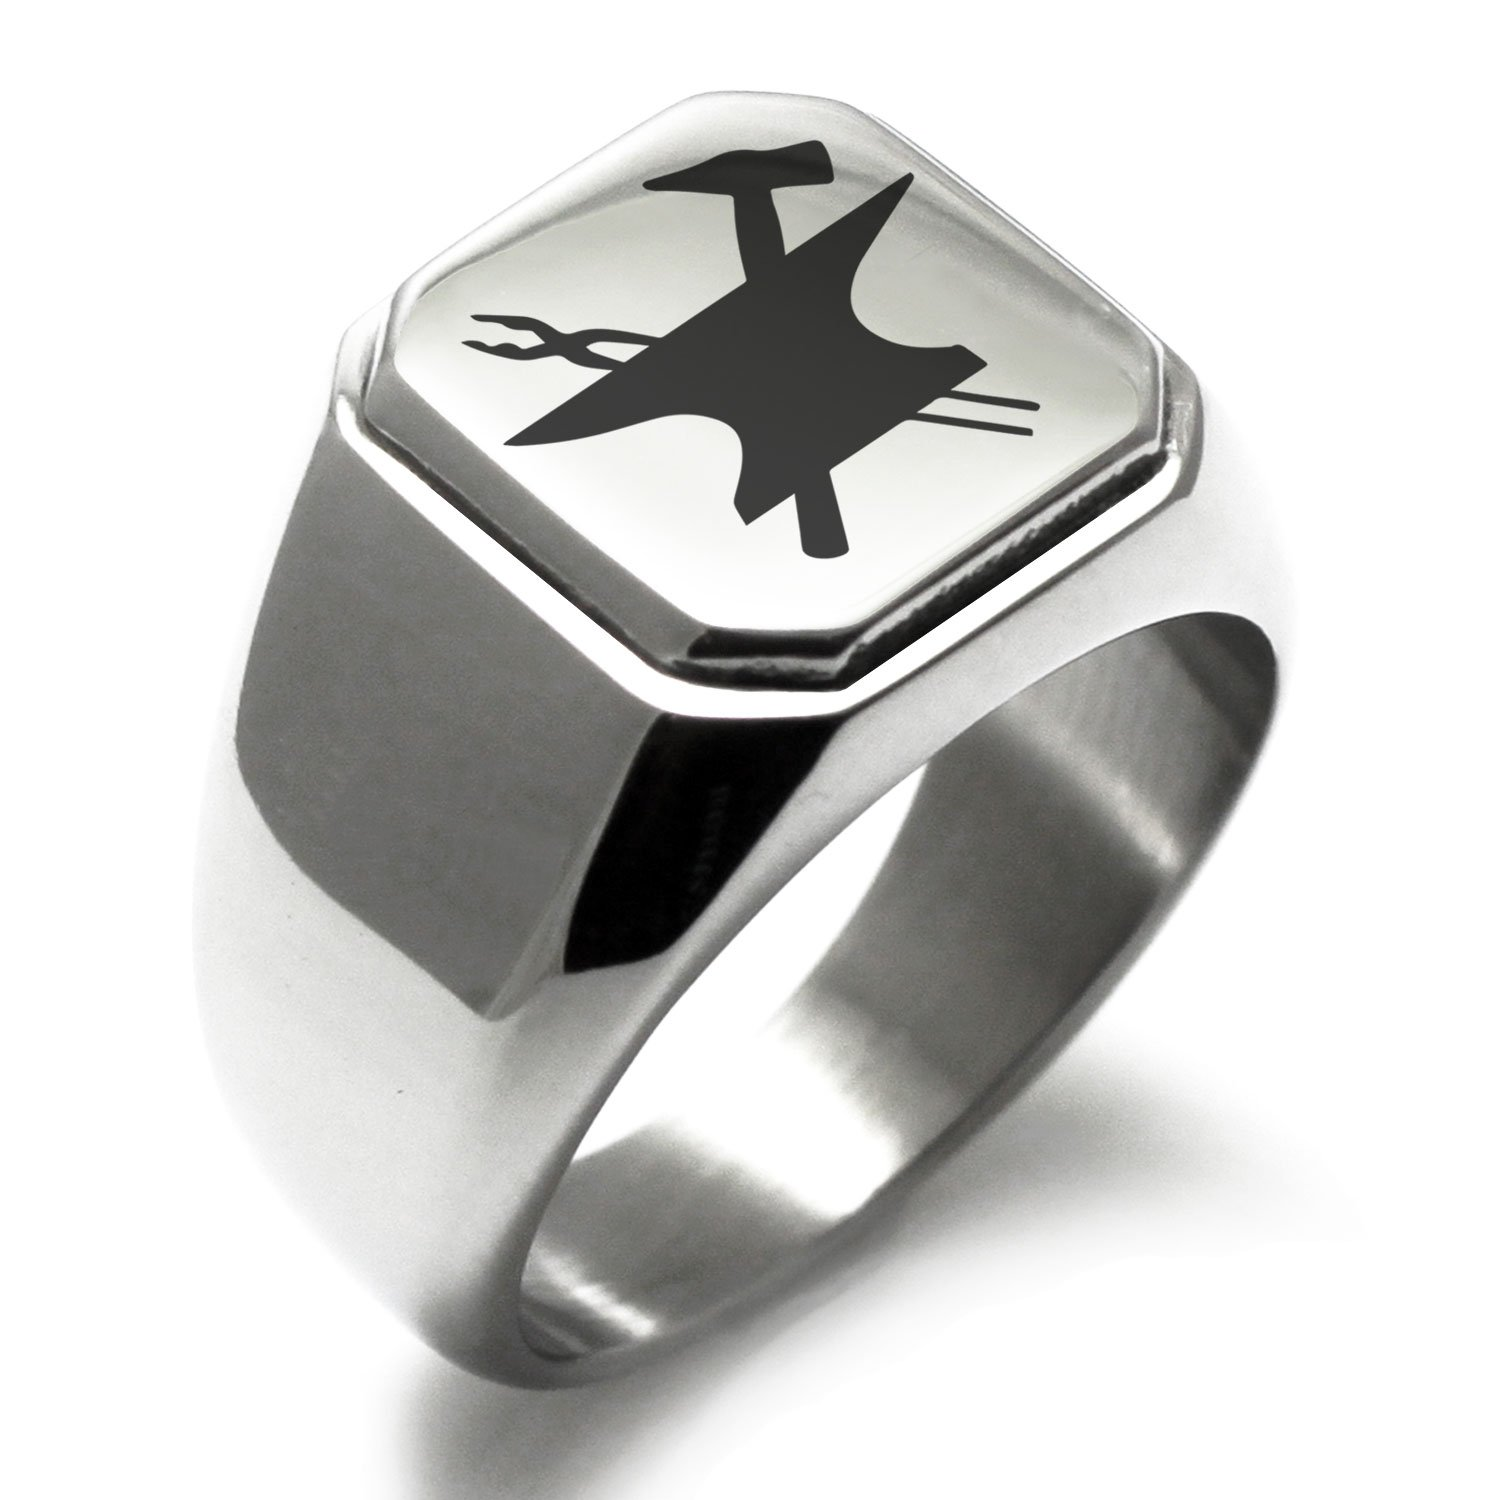 Stainless Steel Hephaestus Greek God of Blacksmith & Fire Symbol Engraved Square Flat Top Biker Style Polished Ring